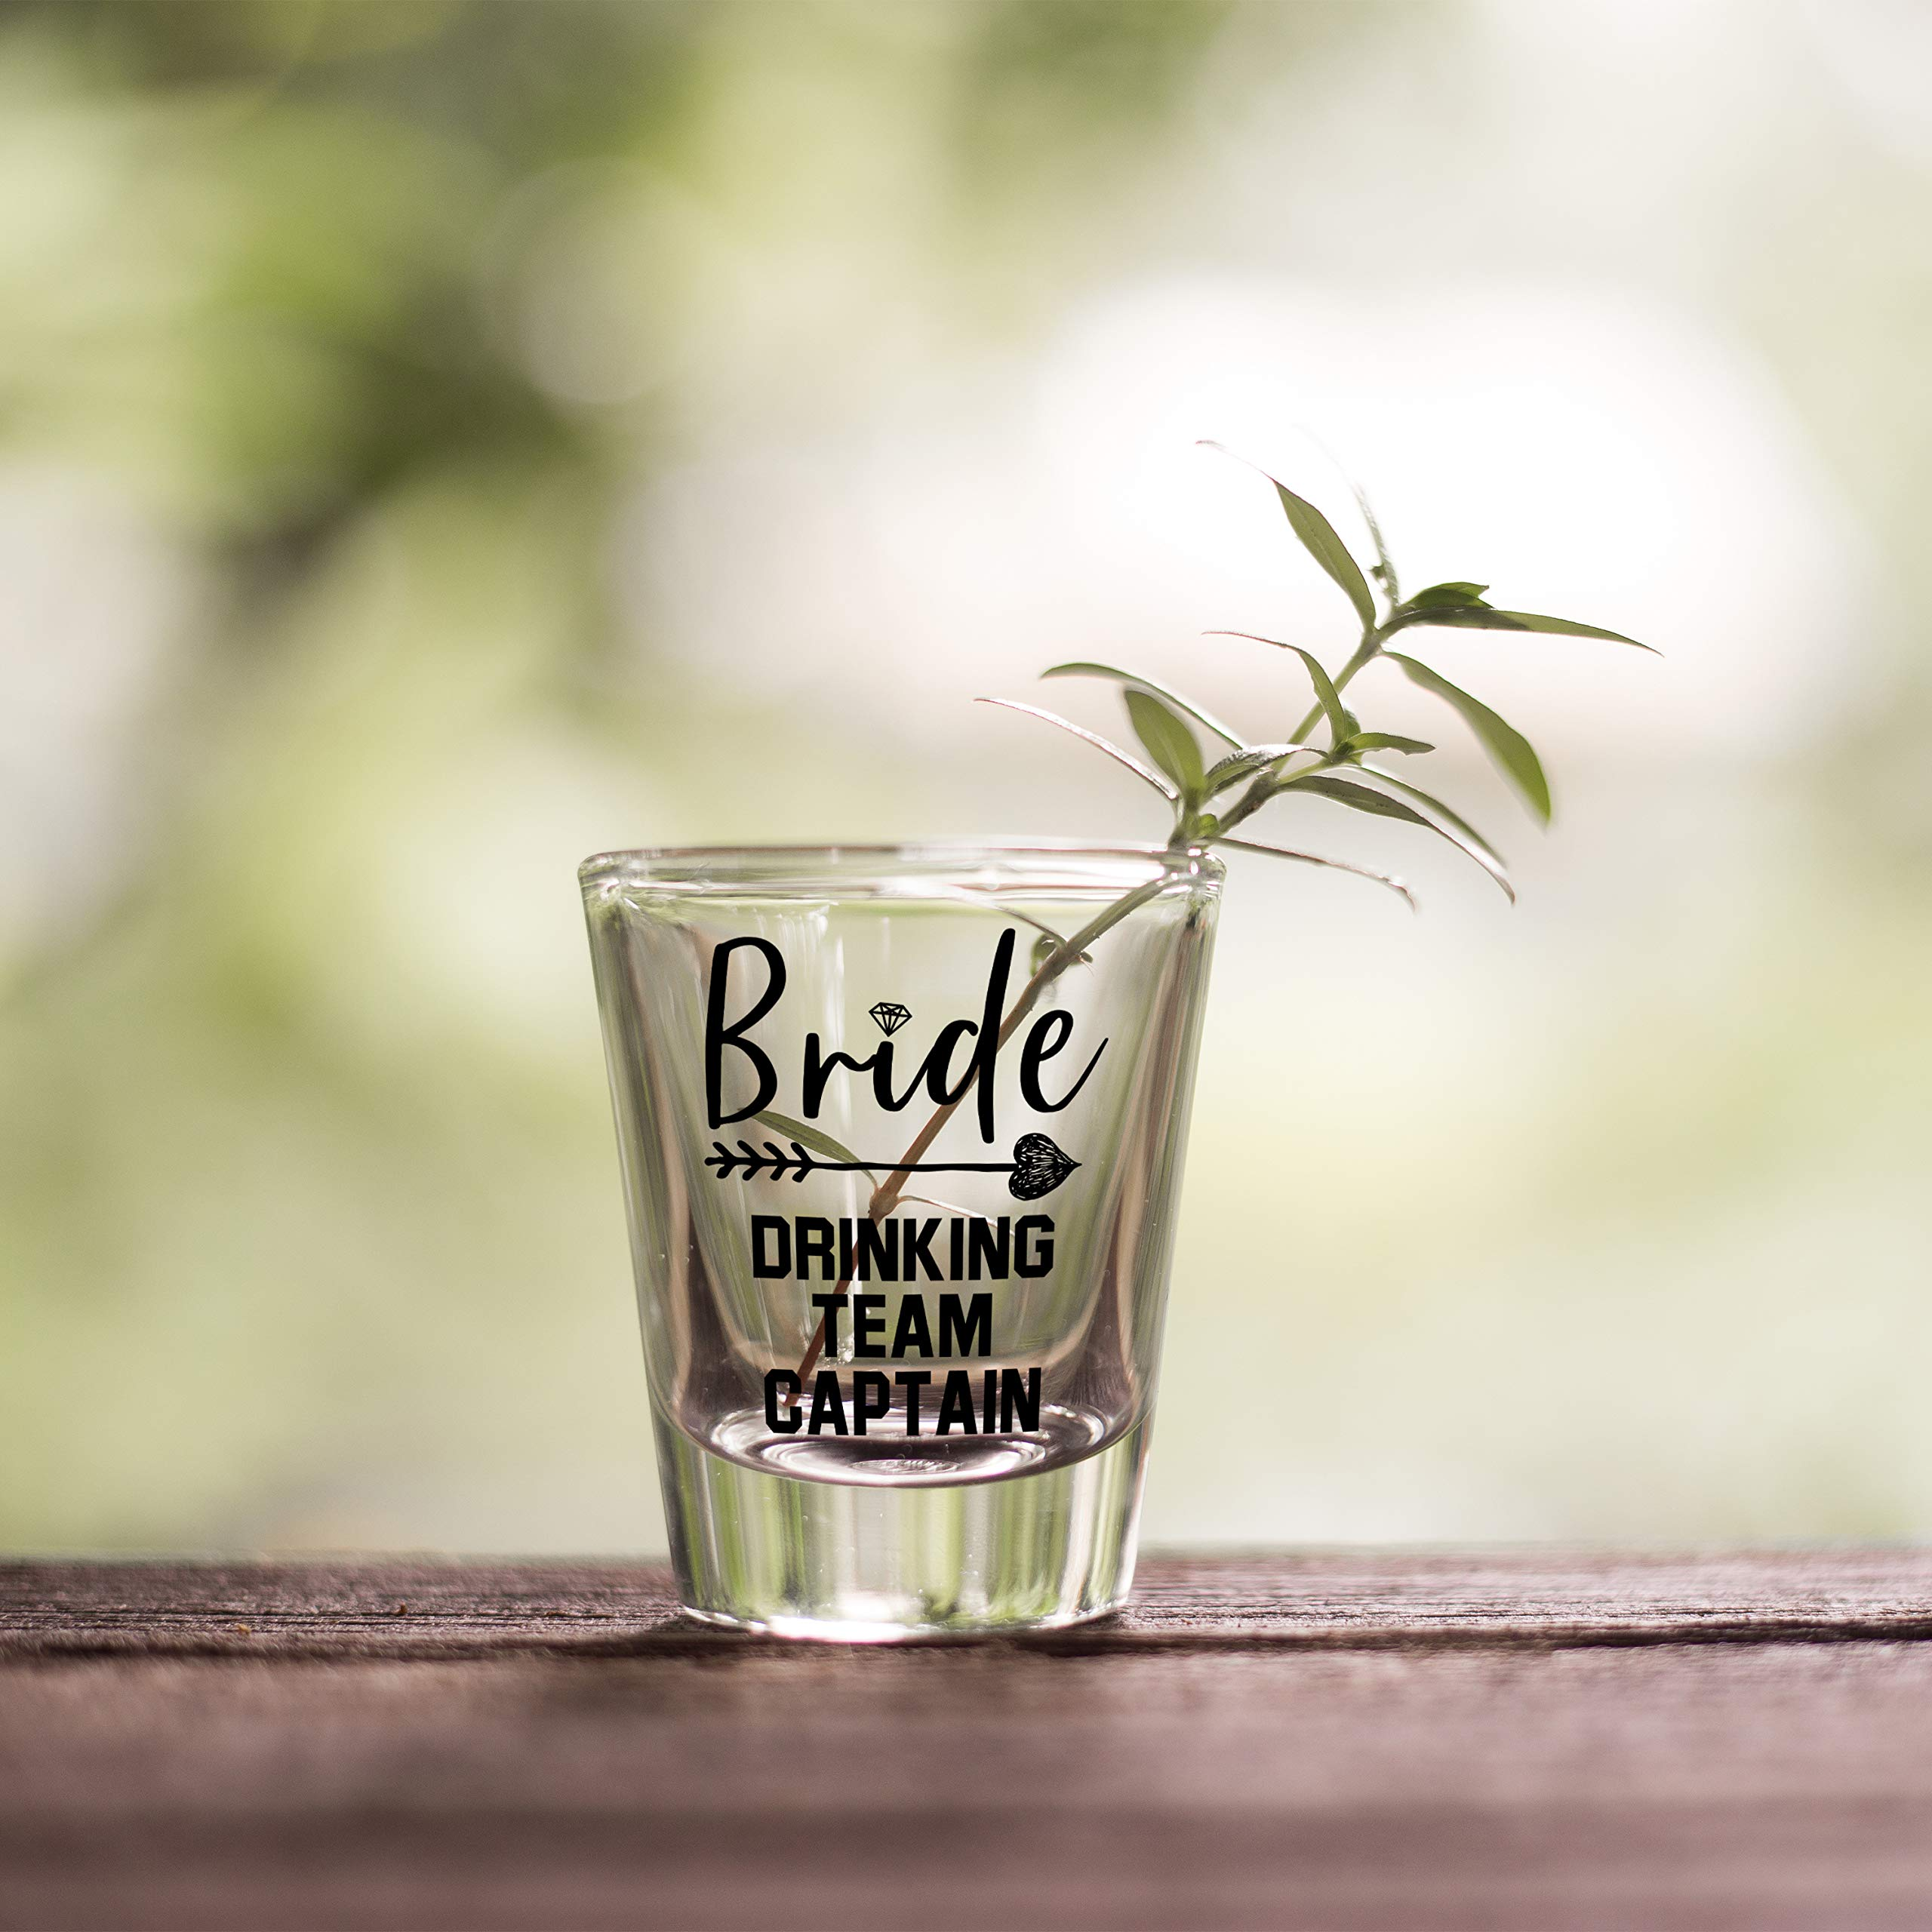 Bridesmaid Gifts Bride's Drinking Team Shot Glasses - Pack of 6 Bride's Drinking Team Member + 1 Bride's Drinking Team Captain - 1.5 oz - Bachelorette Party Favors by USA Custom Gifts (Image #3)